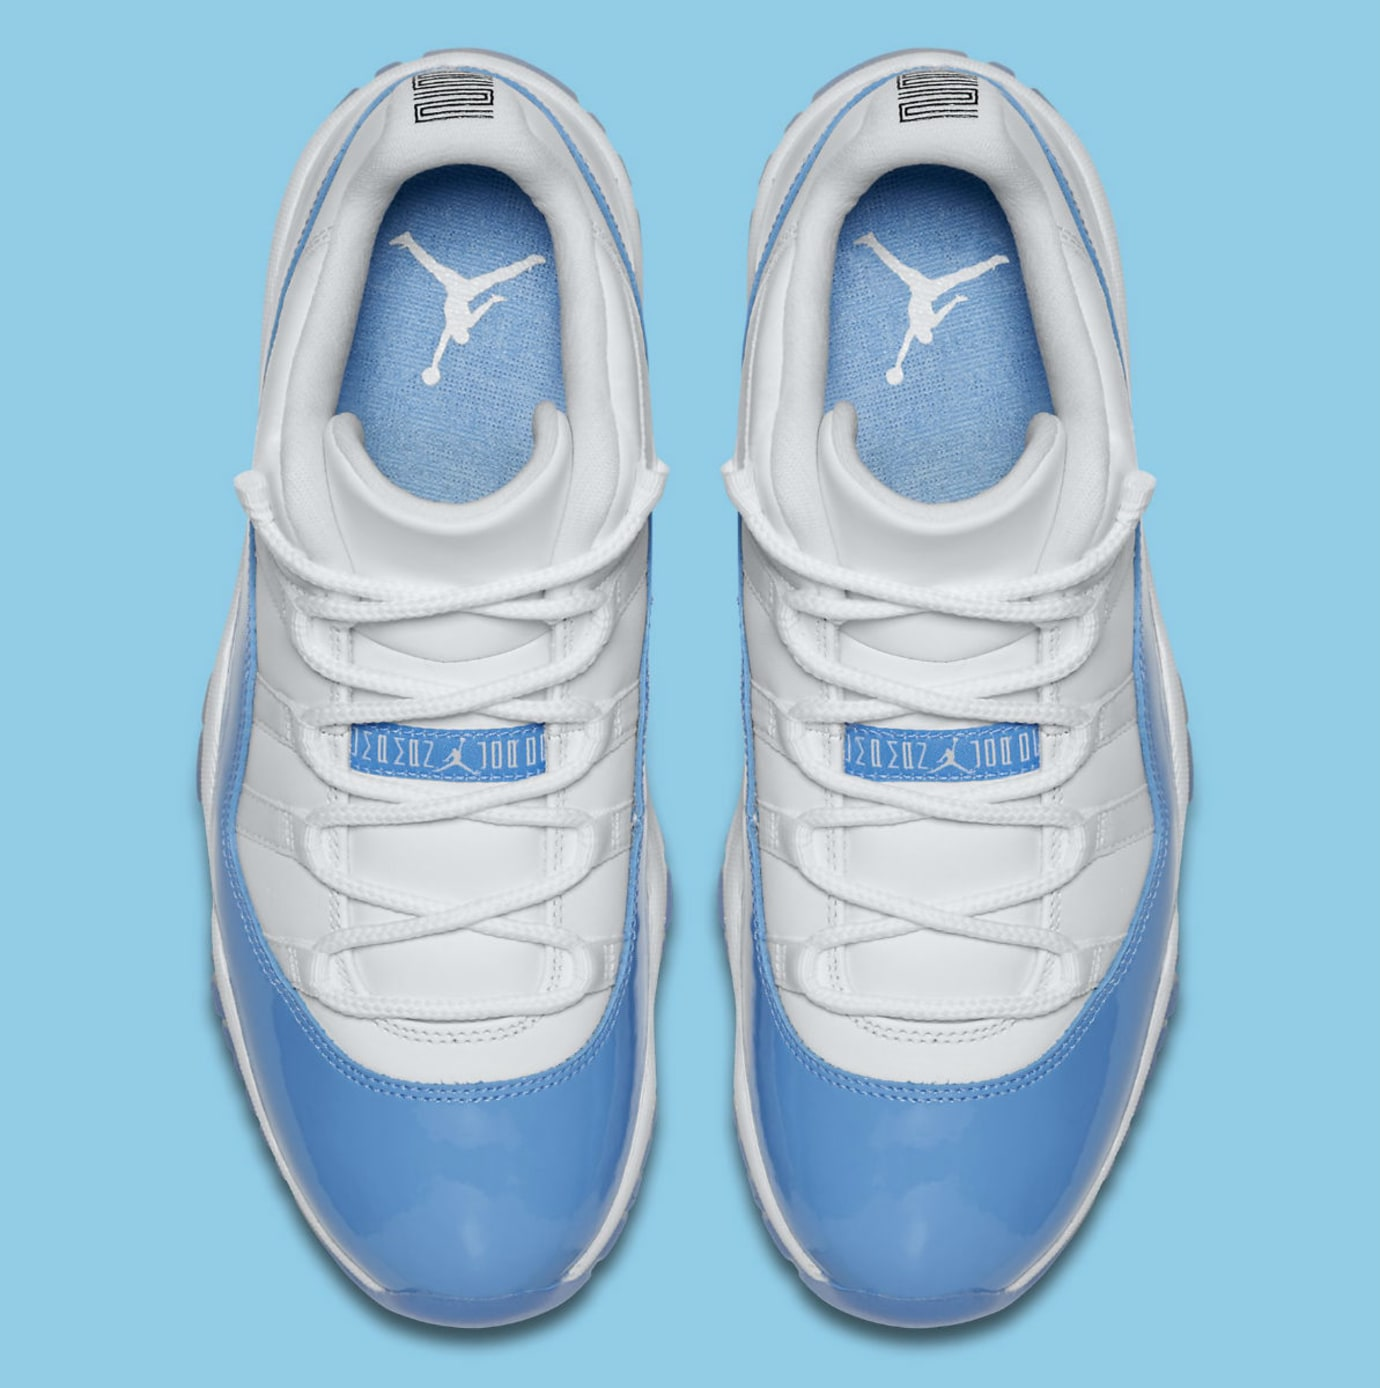 new concept 76092 4dd30 Air Jordan 11 Low UNC University Blue Release Date Top 528895-106